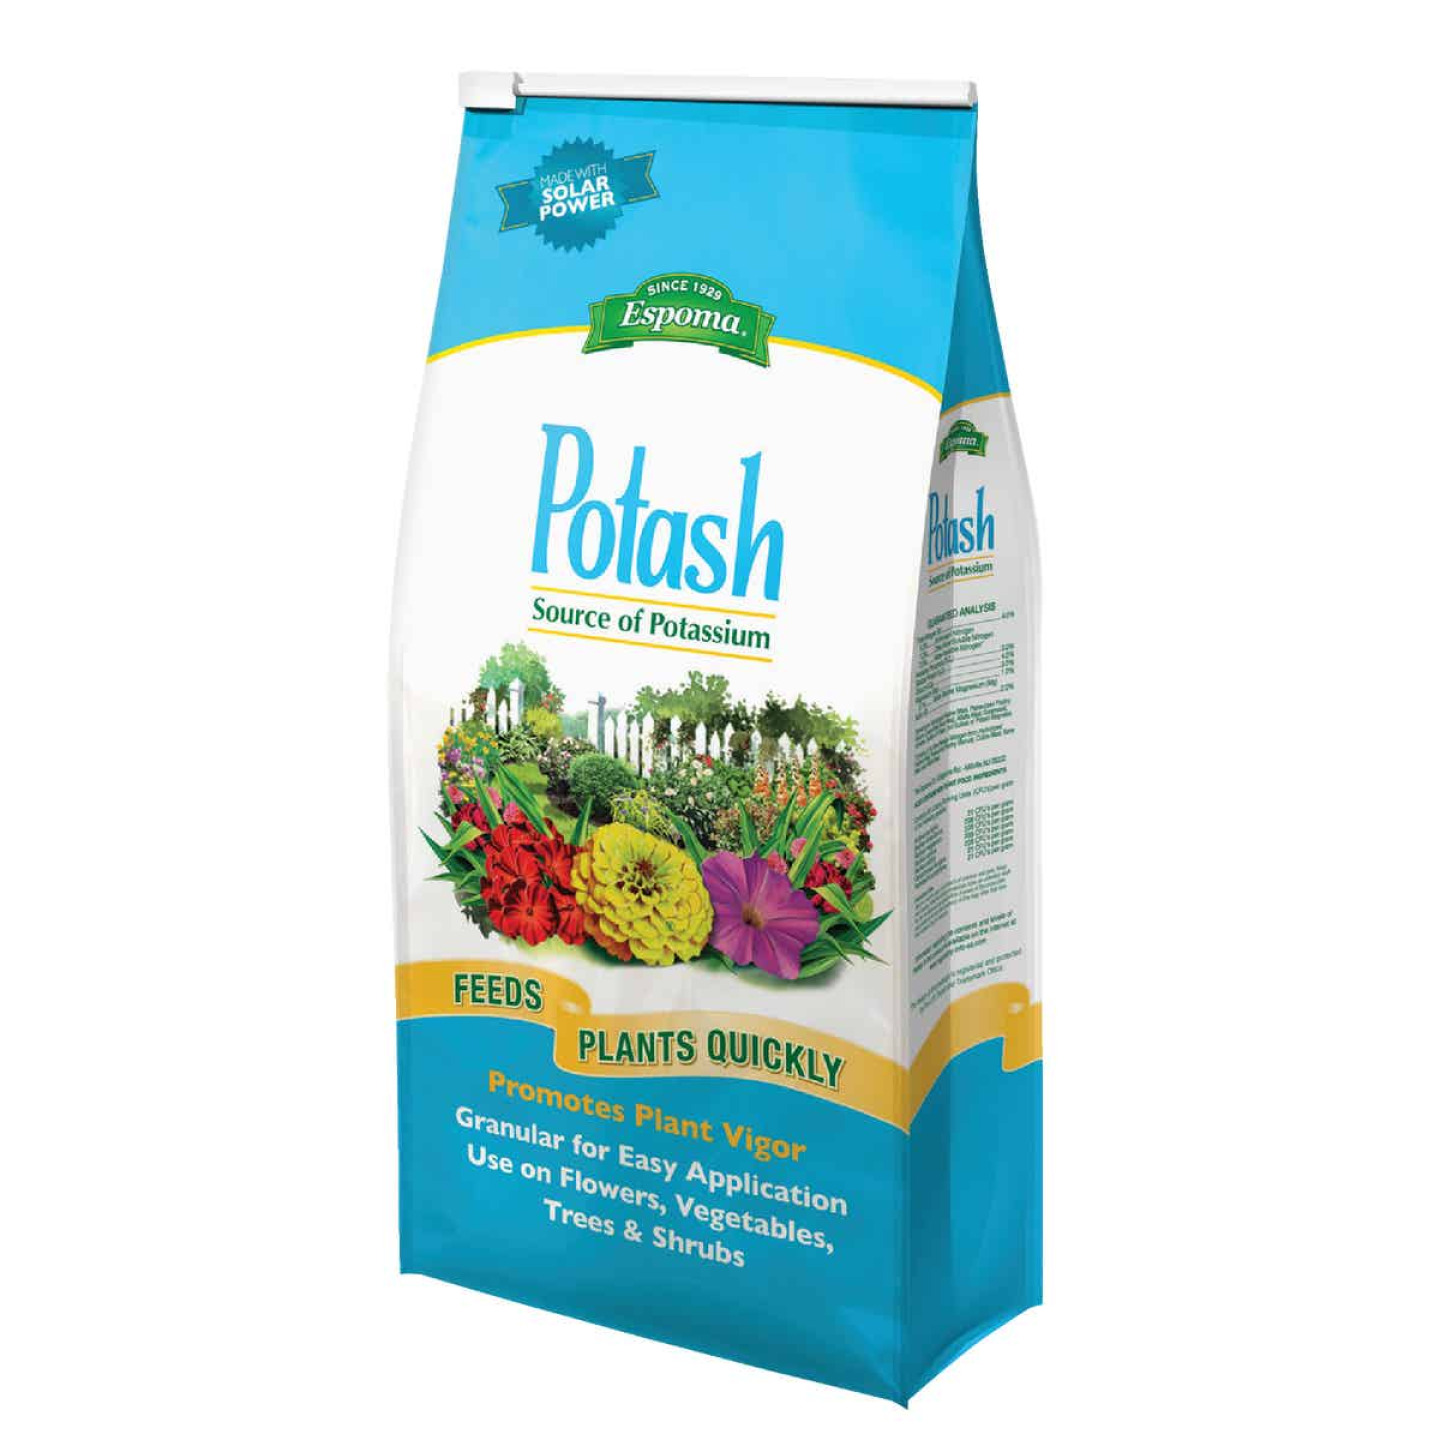 Espoma 6 Lb. 0-0-60 Potash Garden Fertilizer Image 1